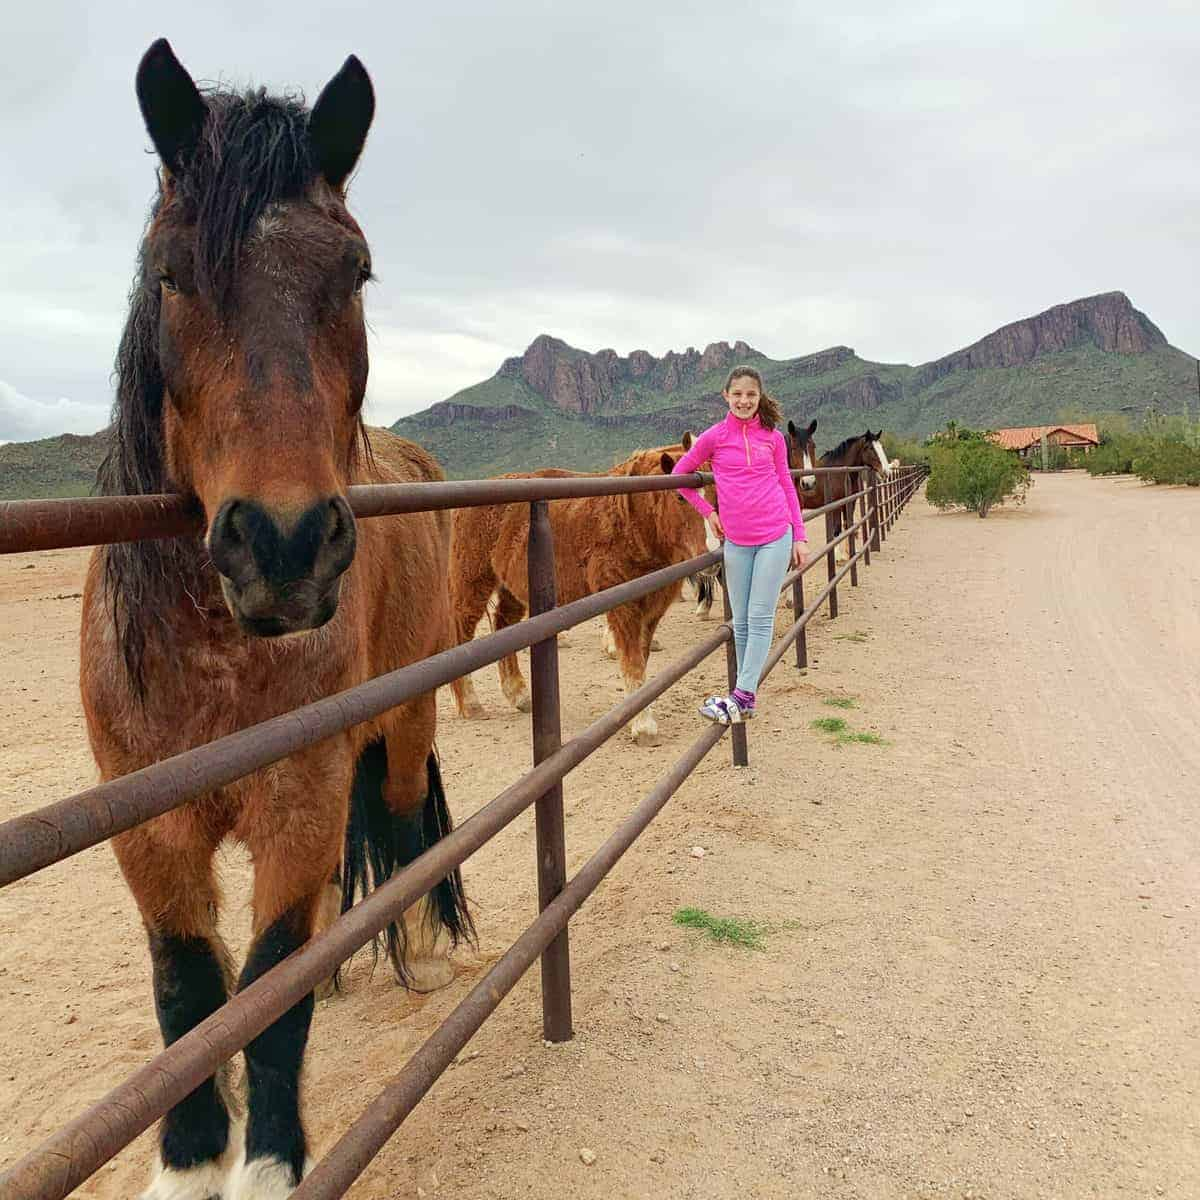 White Stallion Ranch, the Best All-Inclusive Resort in Arizona showing a young girl staying on a gate next to horses on a dude ranch.